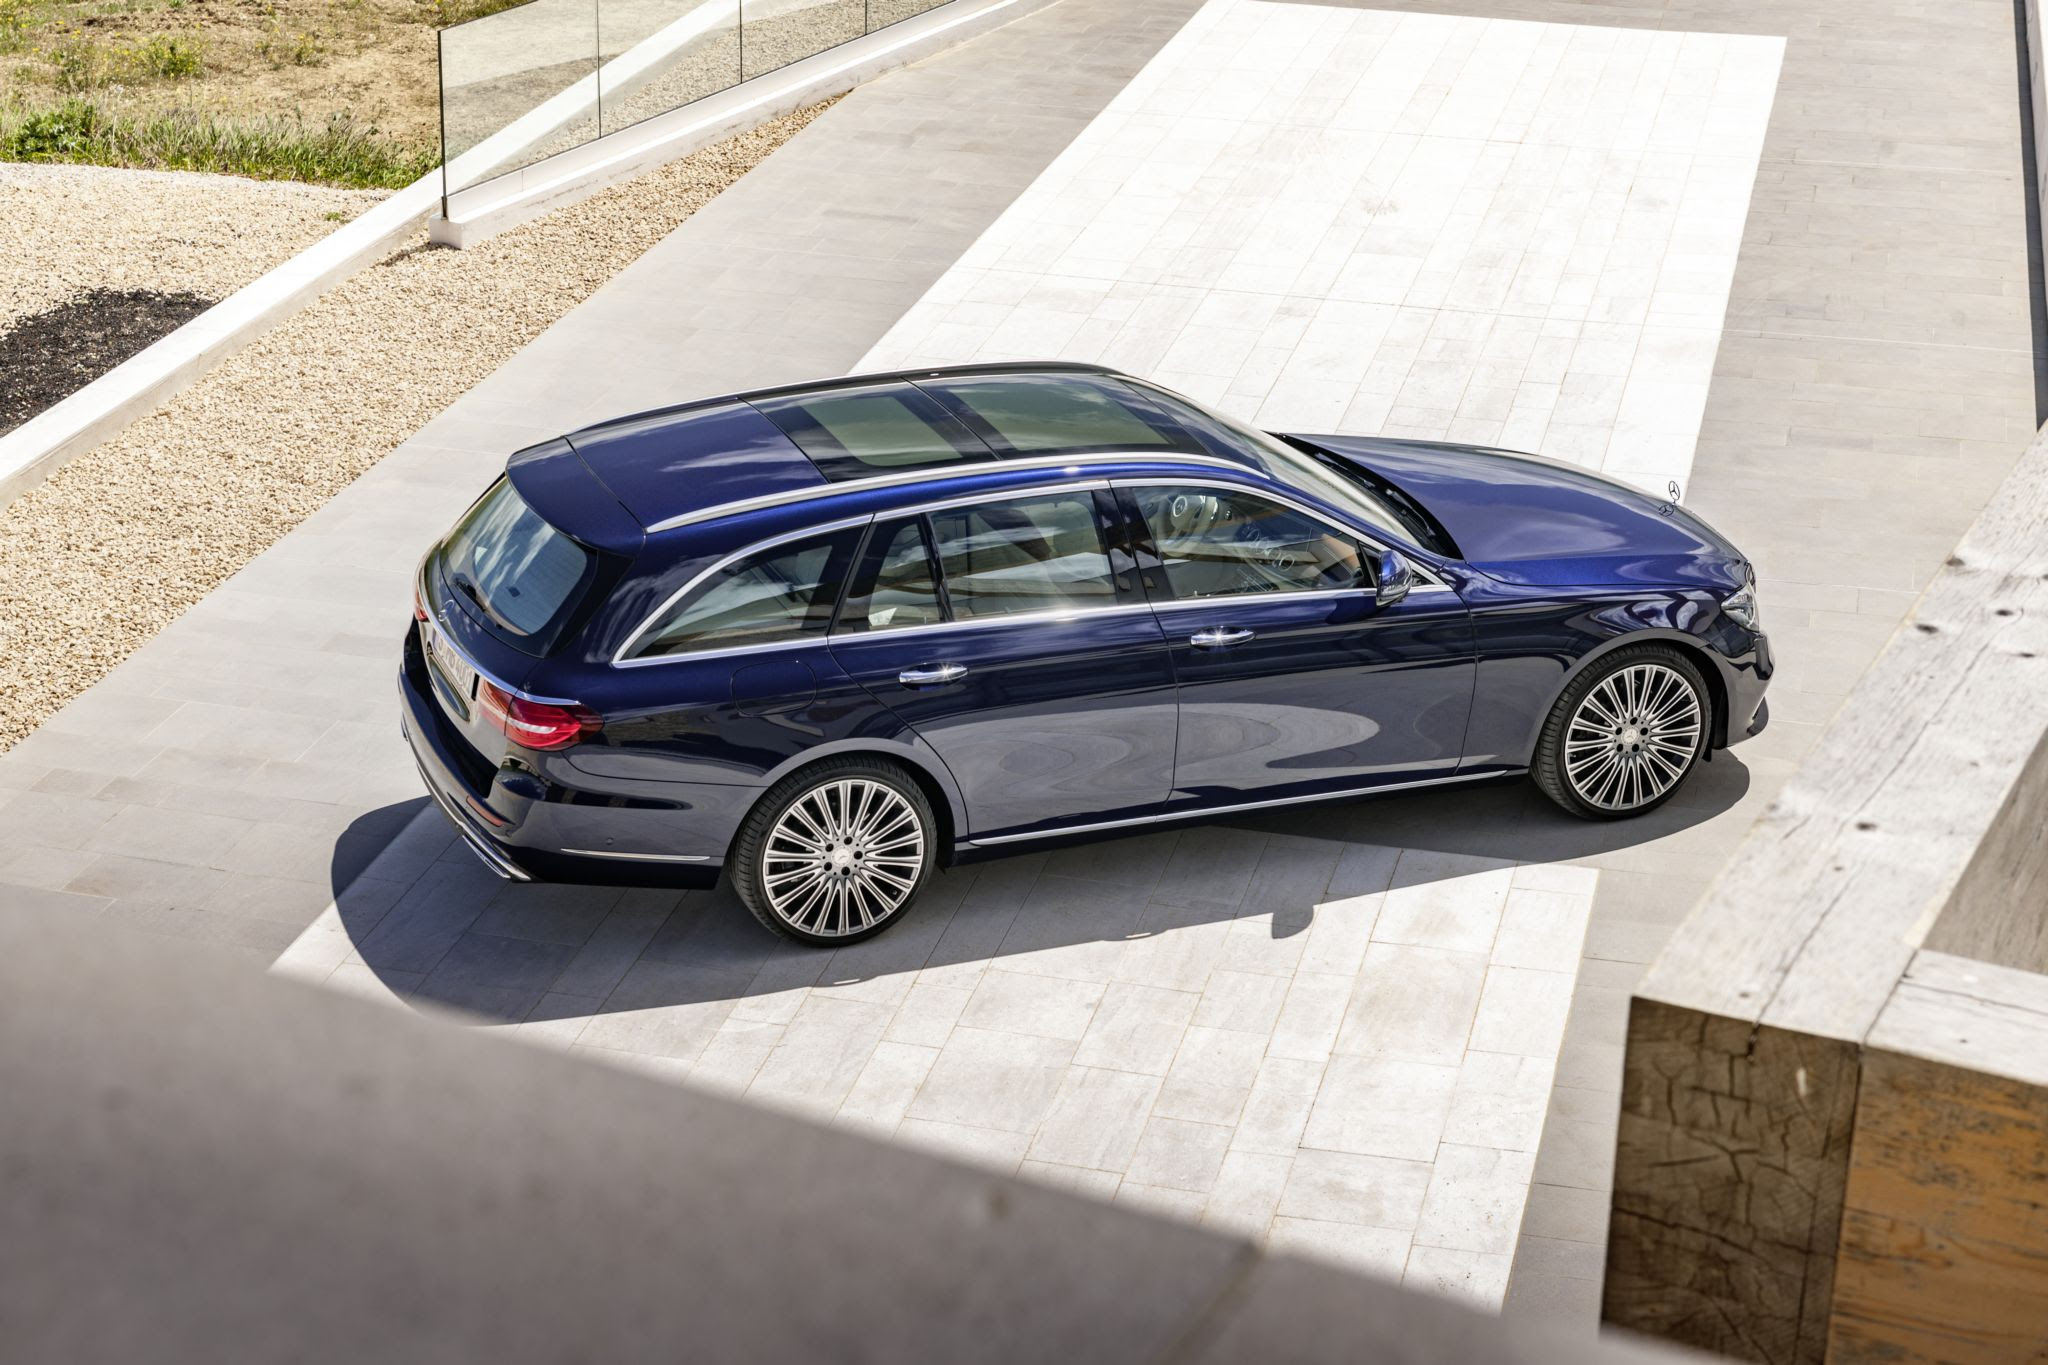 2017 Mercedes-Benz E-Class Wagon Is Both Spacious and ...